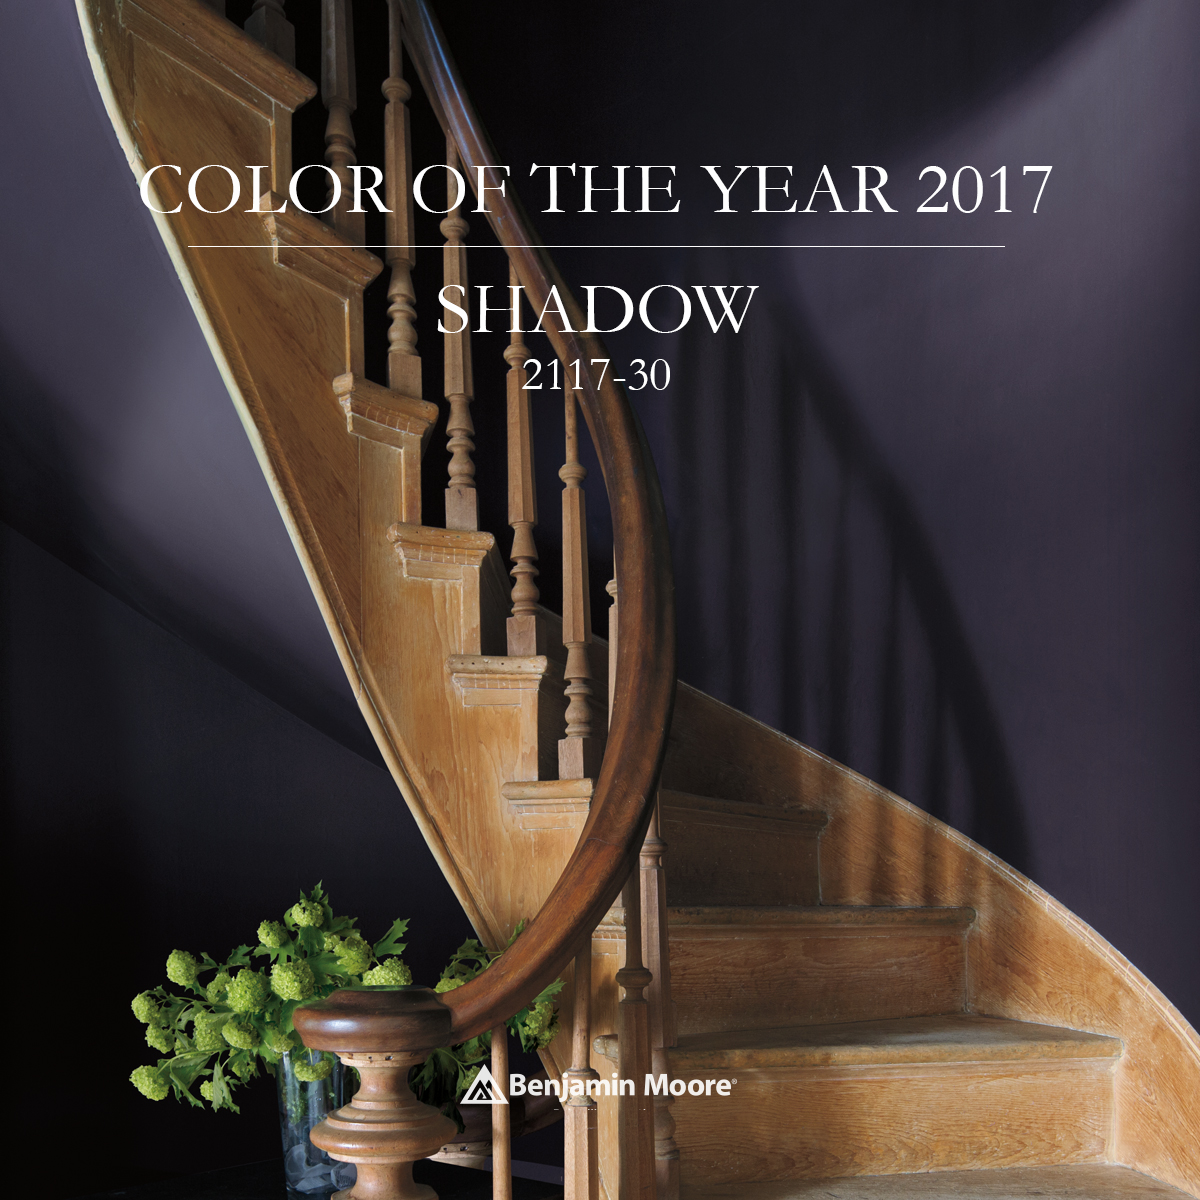 benjamin moore's color of the year 2017 - laura brzegowy